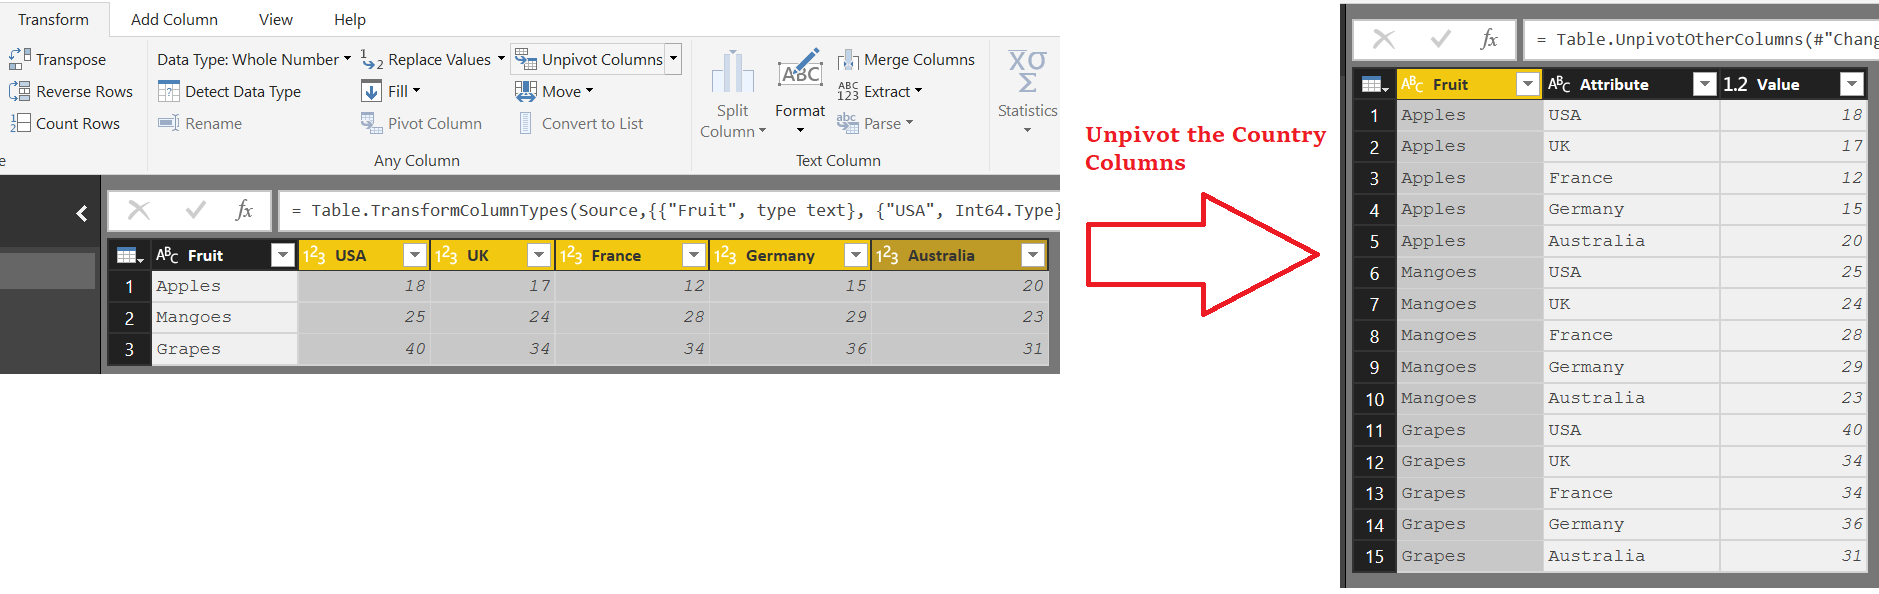 Finding the Column Name with Max or Min Value – Power BI